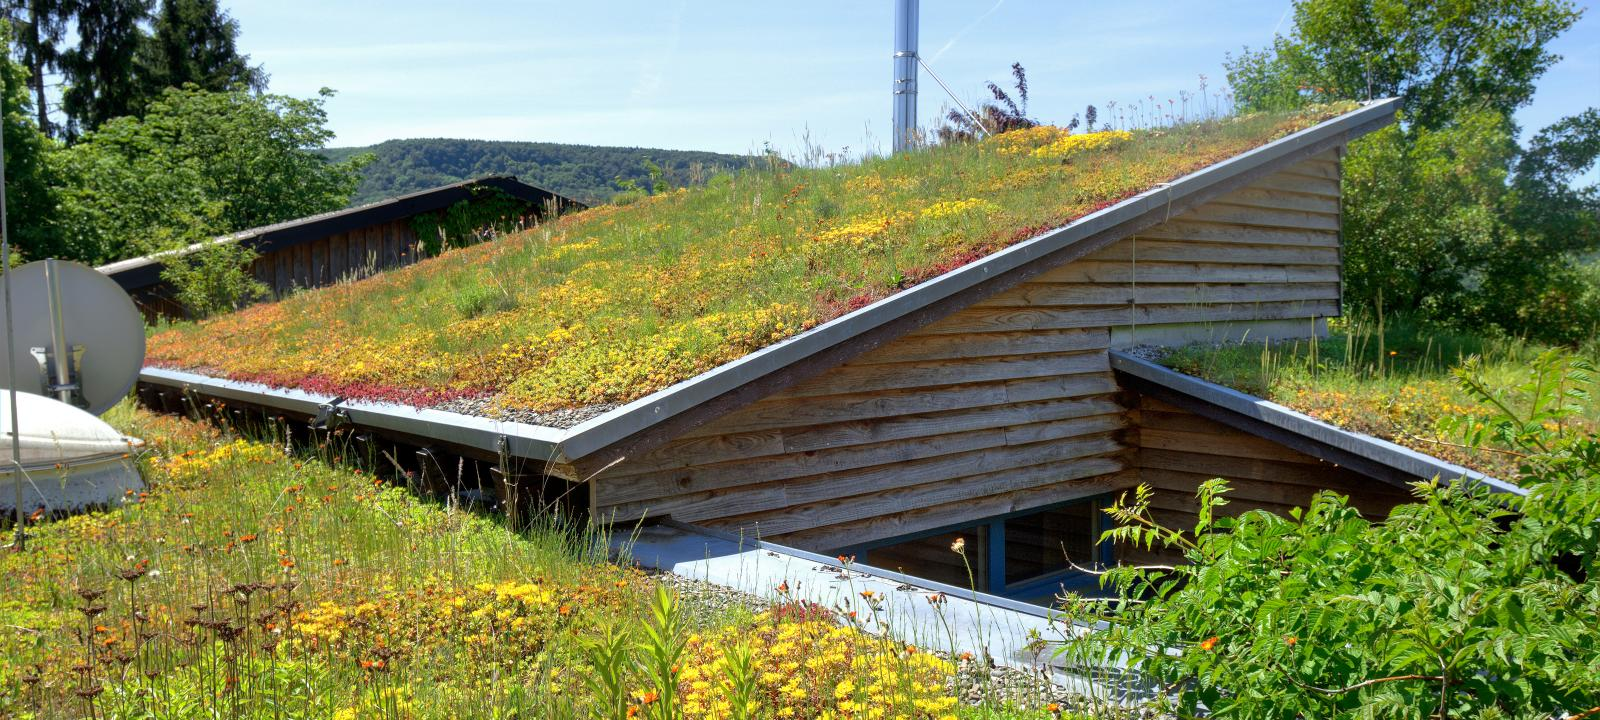 Pitched green roof